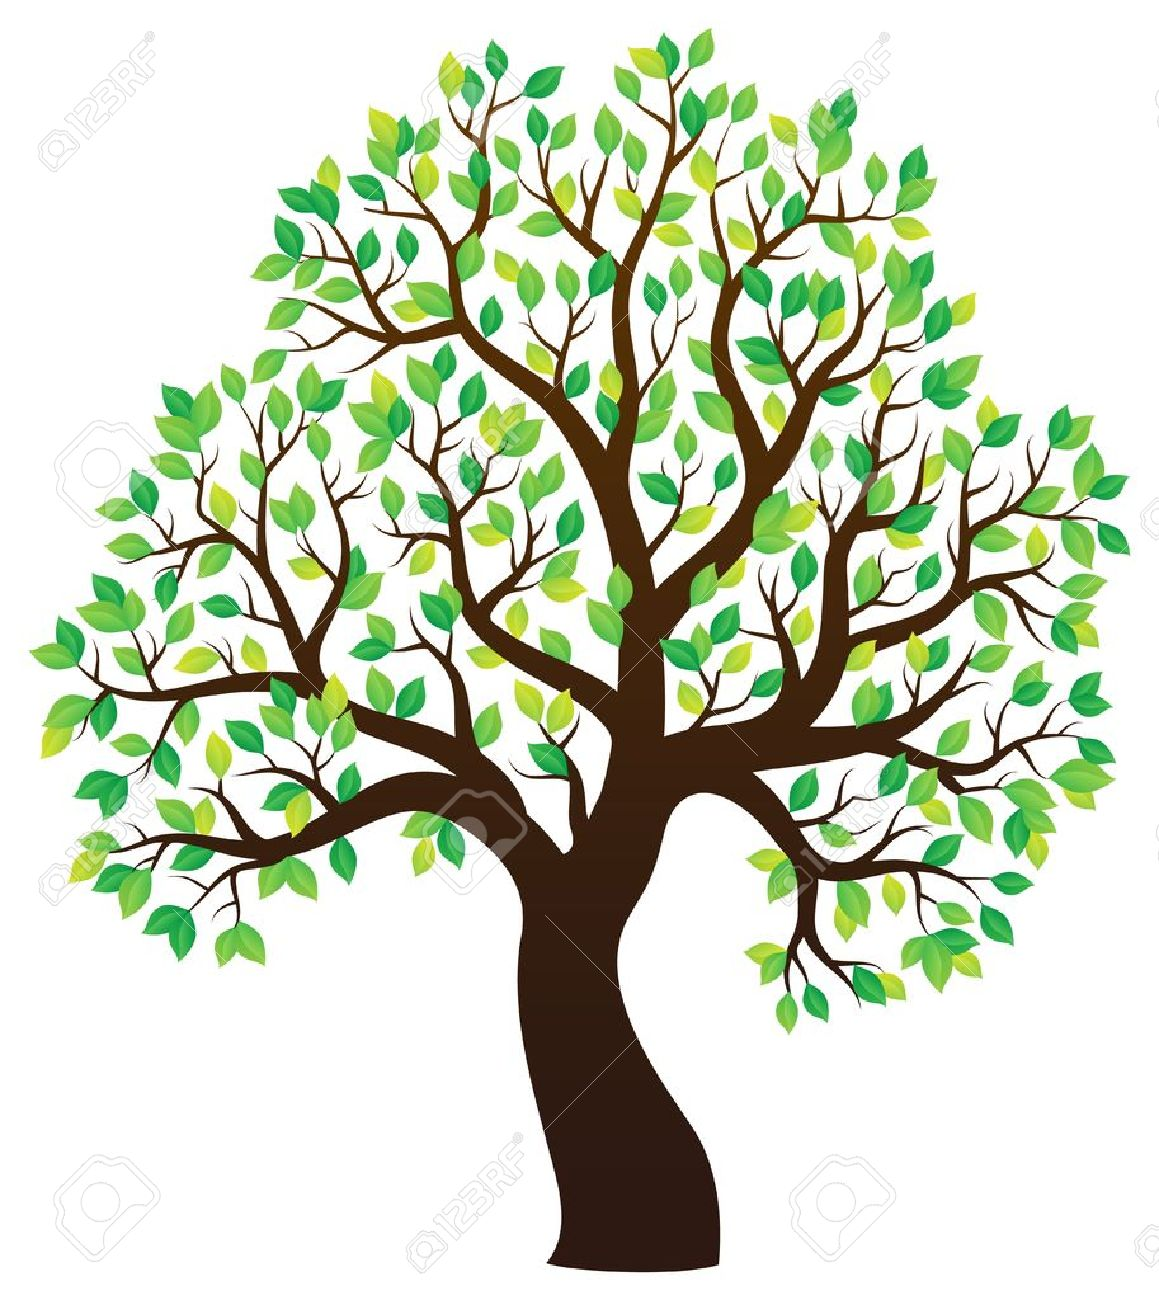 Silhouette of leafy tree theme 1 - eps10 vector illustration. - 50263270